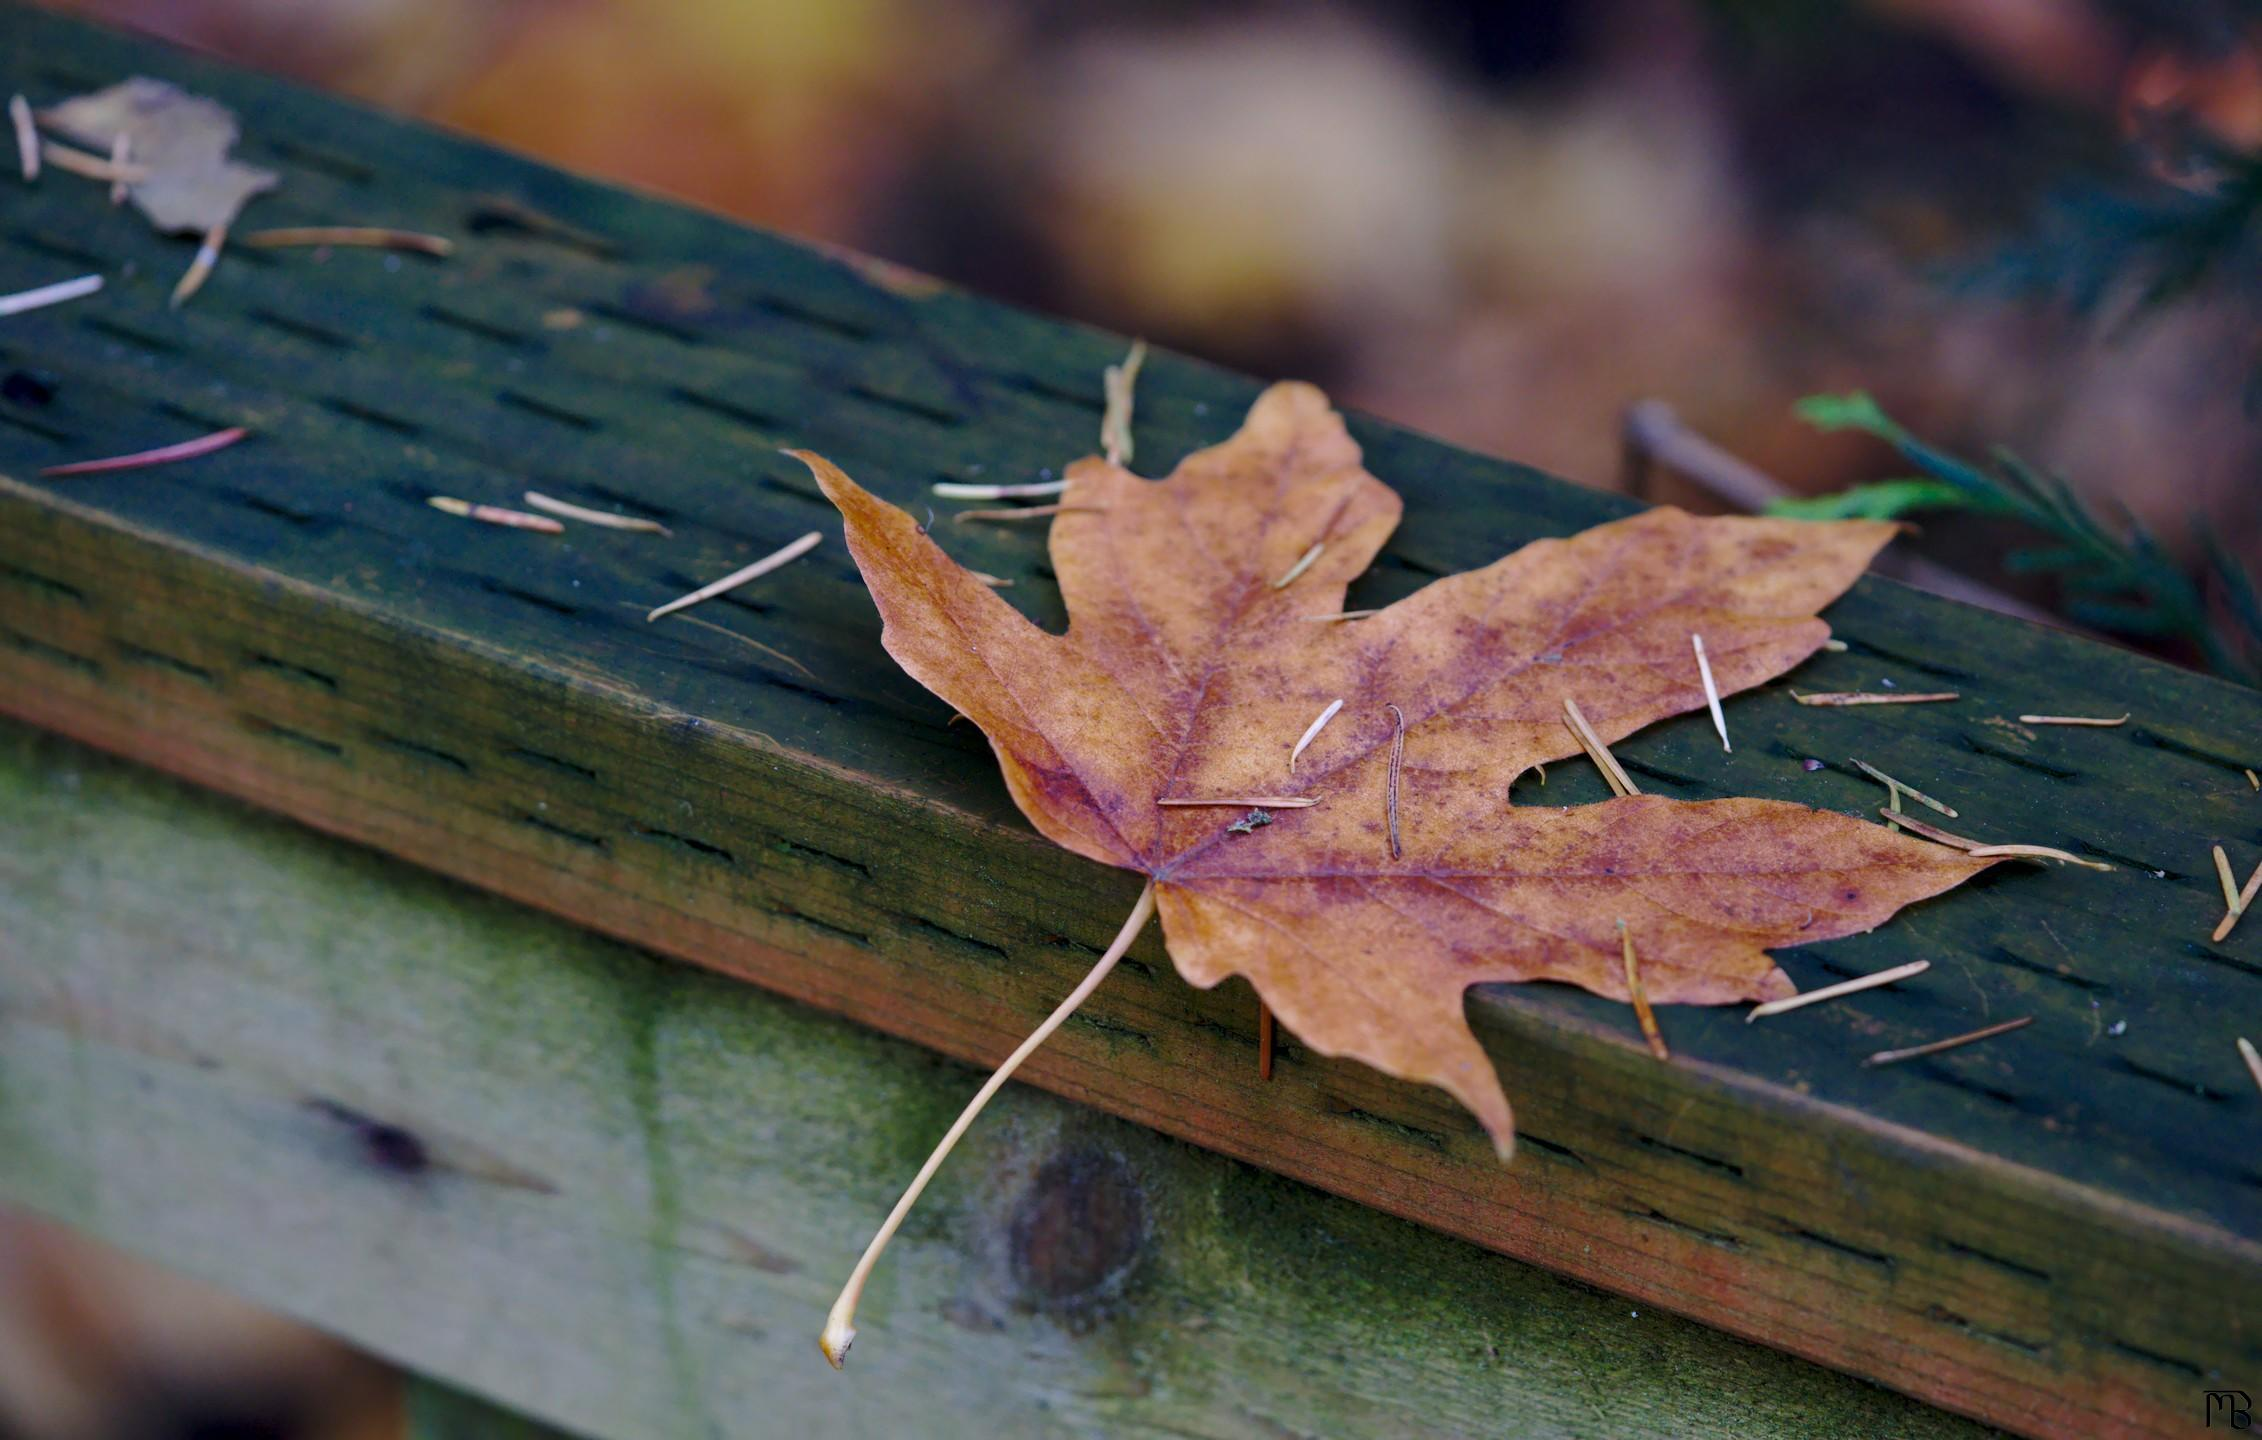 Brown leaf on wooden rail